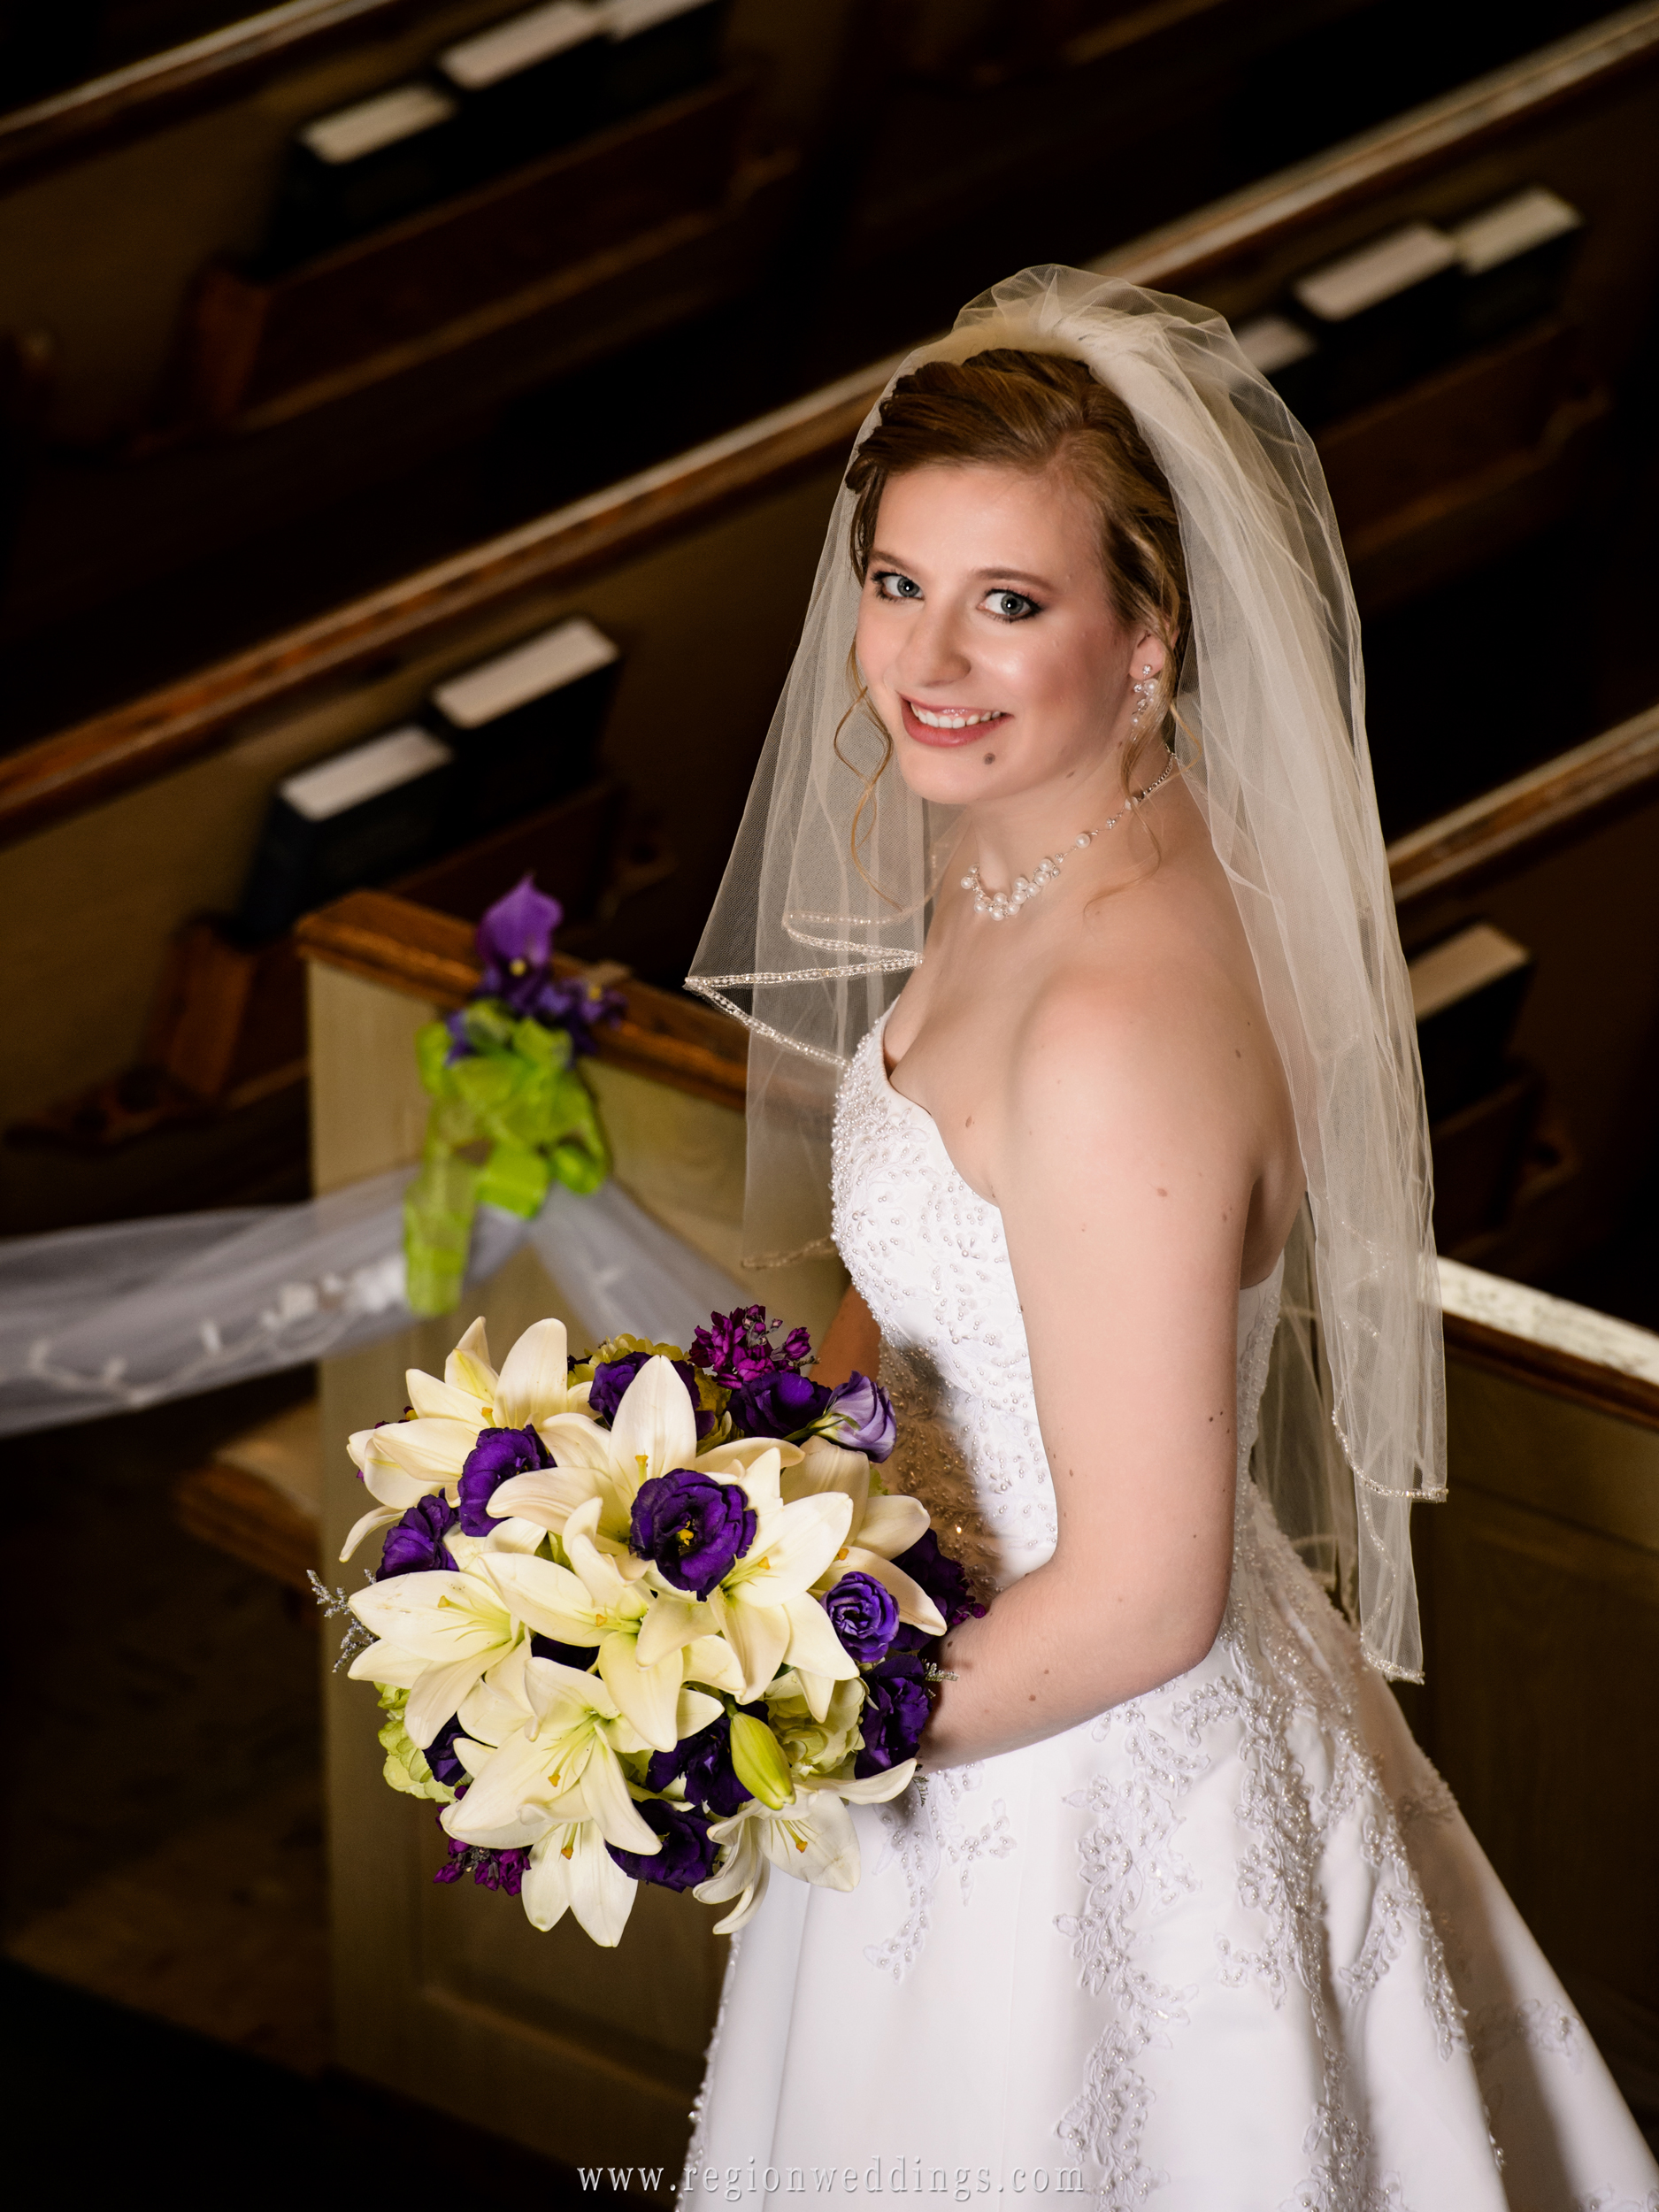 The bride on her big day at church.